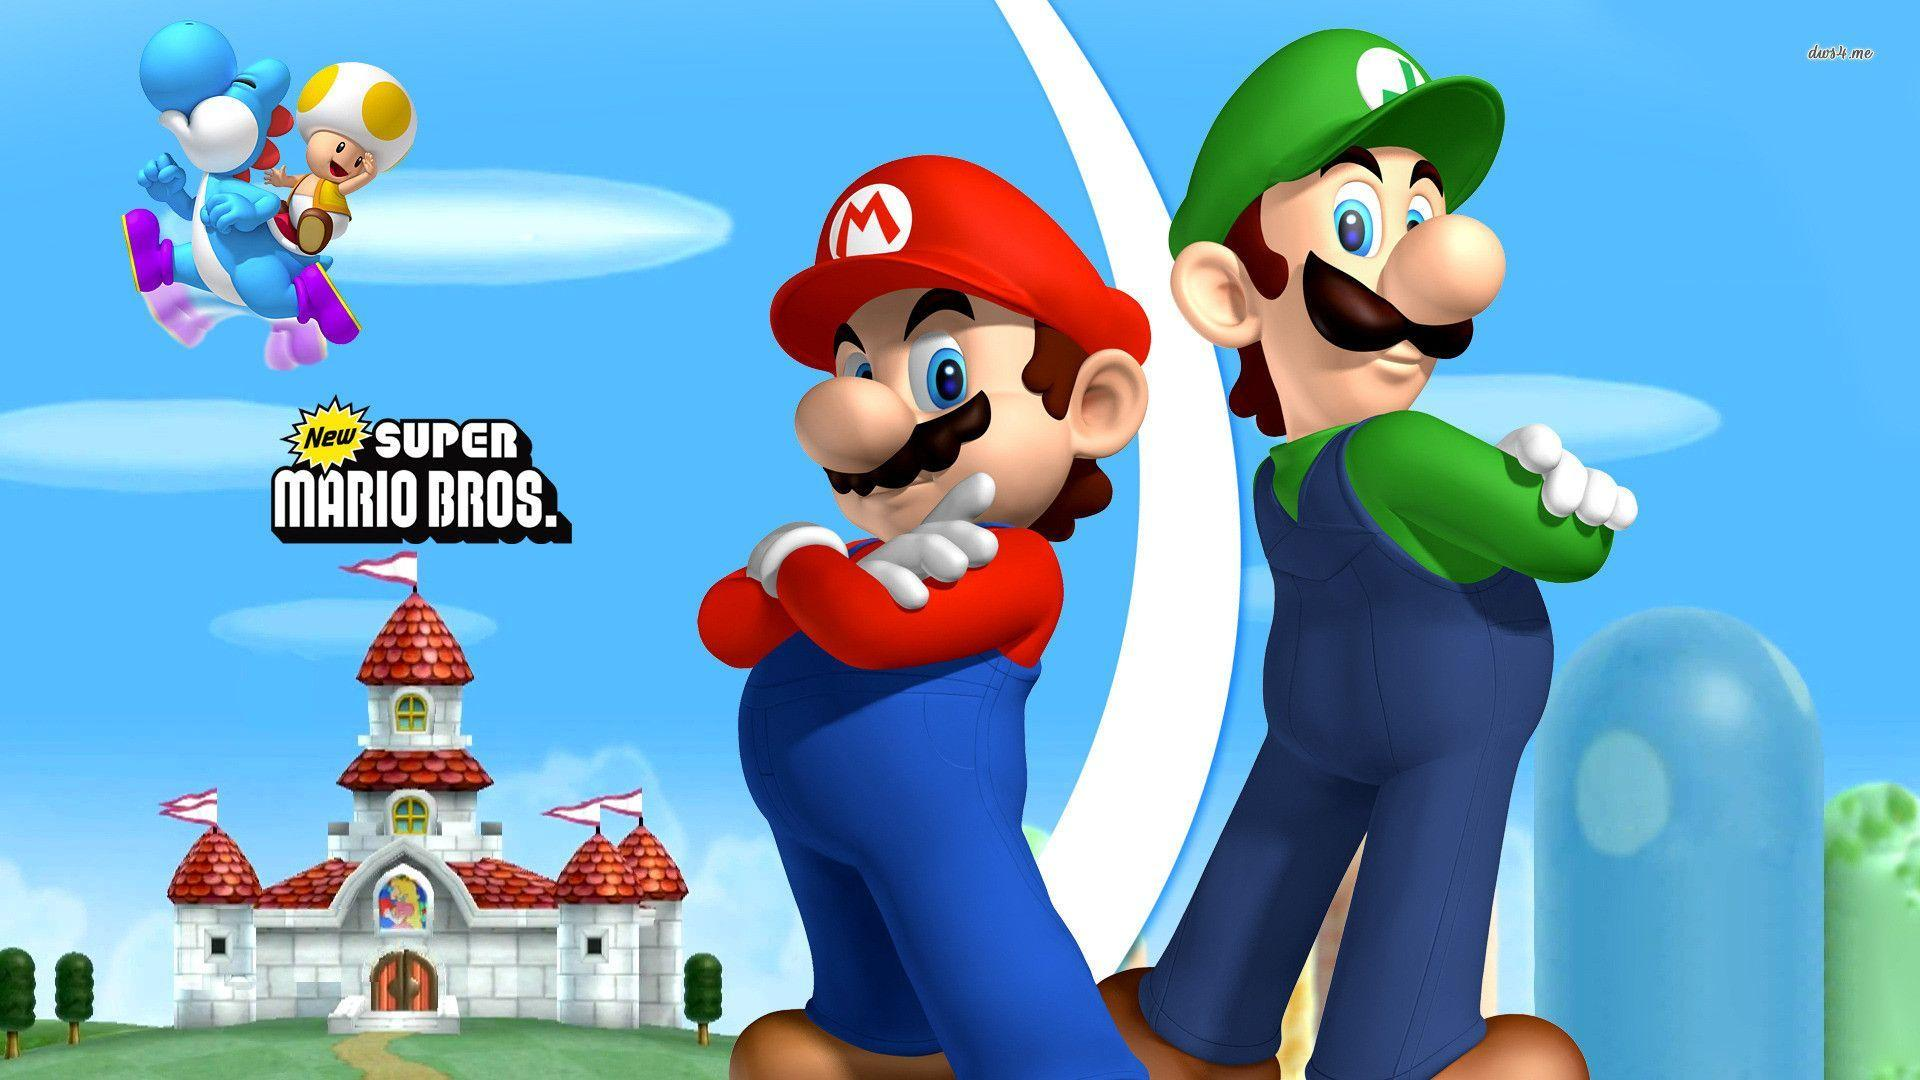 mario and luigi wallpapers - wallpaper cave